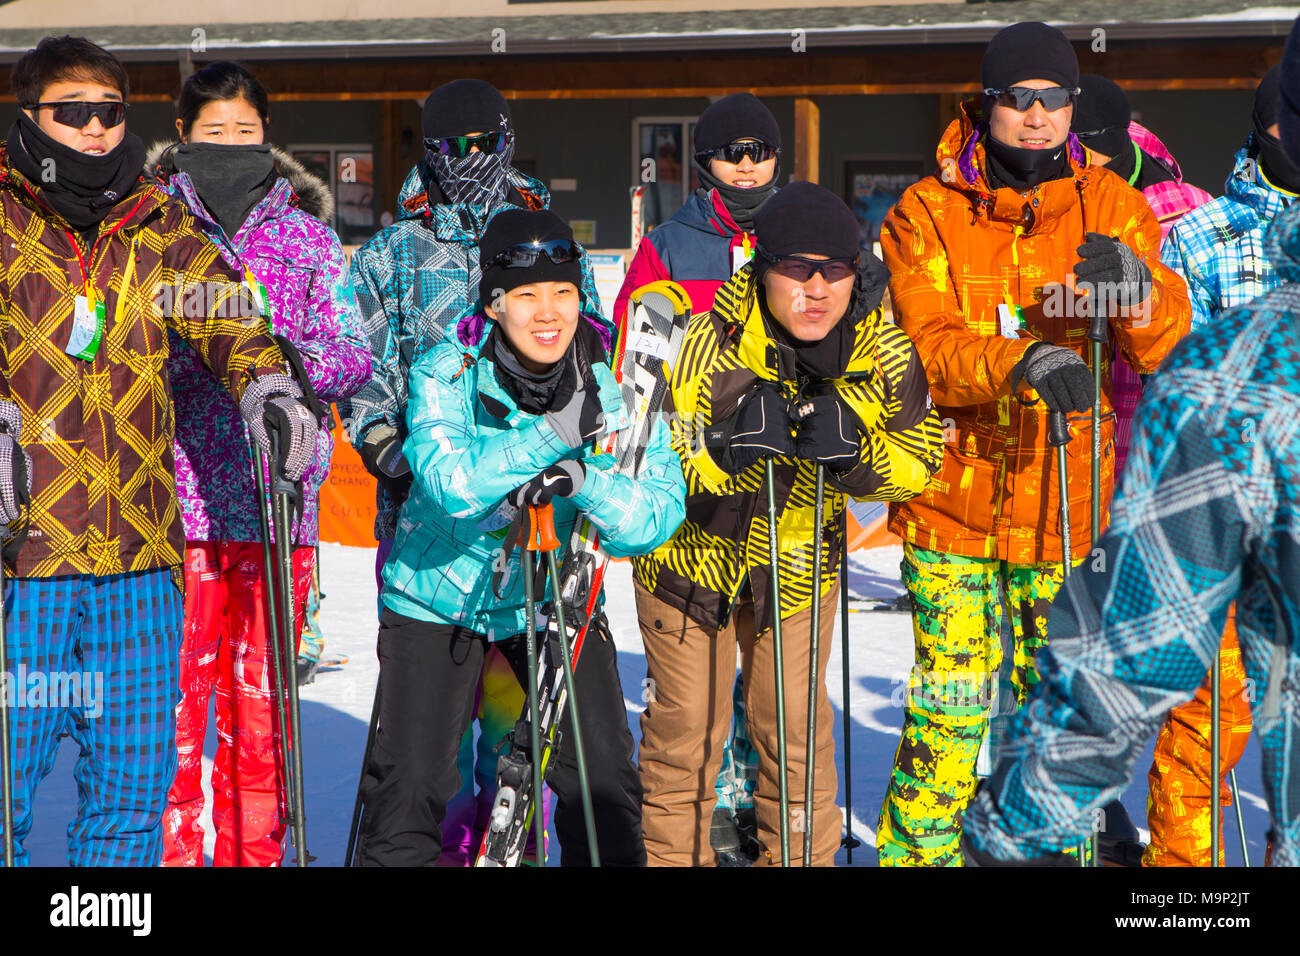 A group of young Koreans at the Alpensia resort in South Korea. Traditionally skiers dress in bright colored ski suits.  The Alpensia Resort is a ski resort and a tourist attraction. It is located on the territory of the township of Daegwallyeong-myeon, in the county of Pyeongchang, hosting the Winter Olympics in February 2018.  The ski resort is approximately 2.5 hours from Seoul or Incheon Airport by car, predominantly all motorway.   Alpensia has six slopes for skiing and snowboarding, with runs up to 1.4 km (0.87 mi) long, for beginners and advanced skiers, and an area reserved for Stock Photo